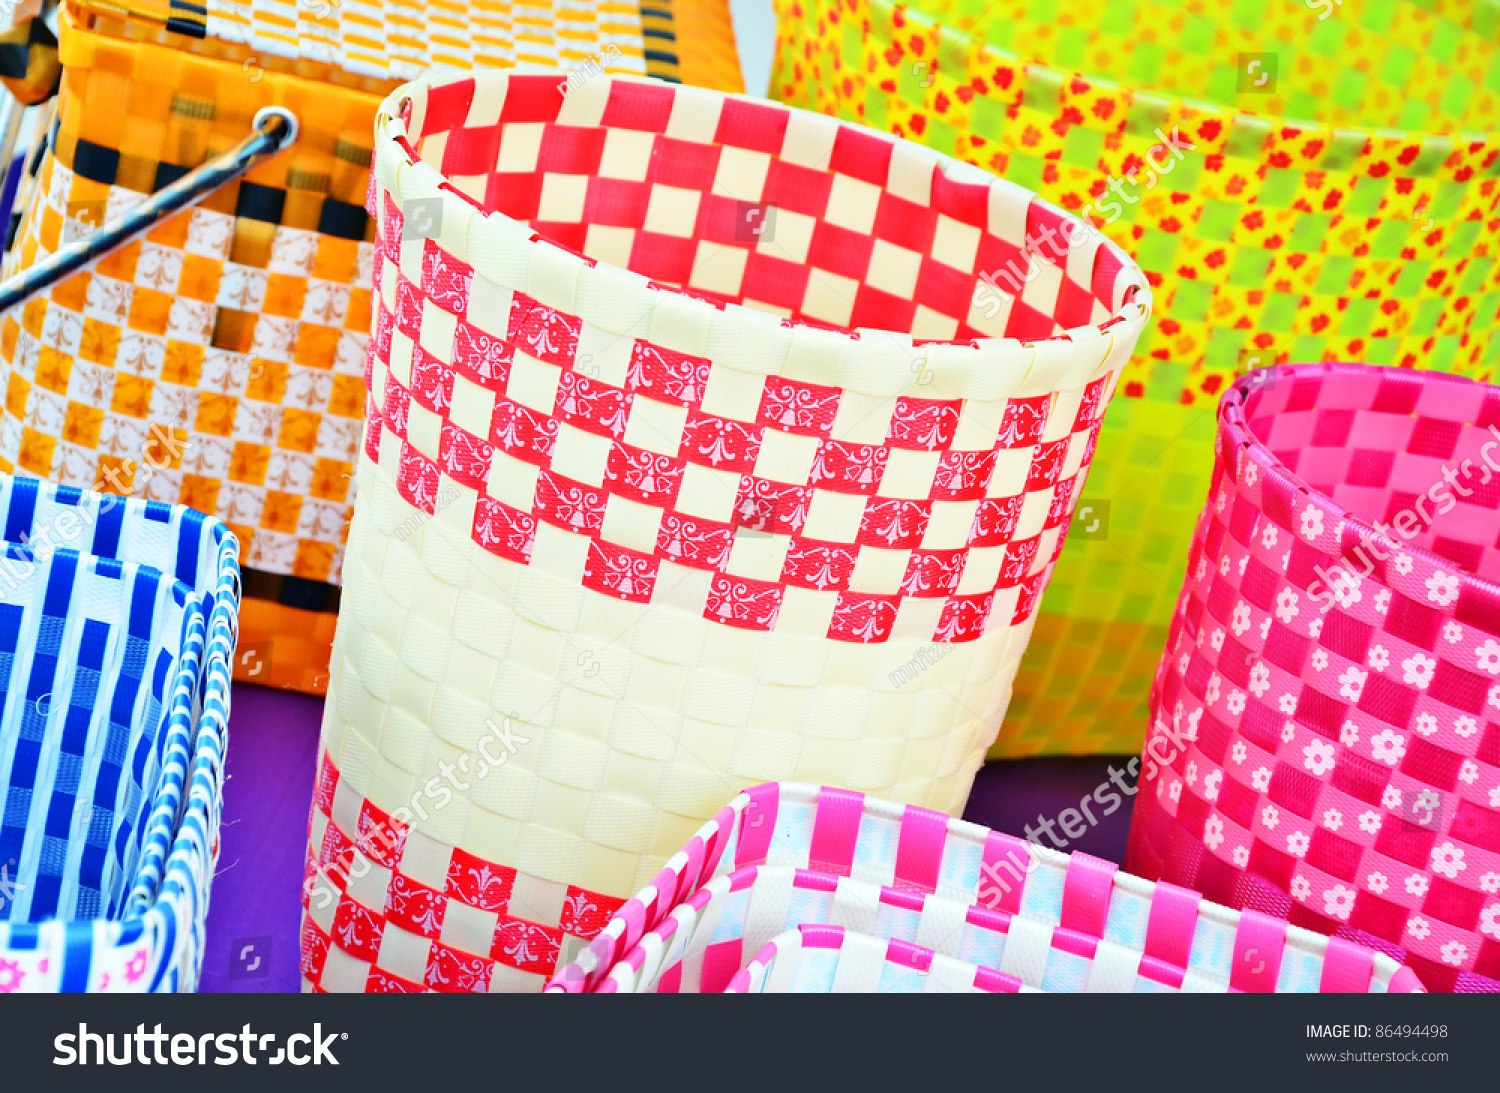 Various Color Plastic Basket Home Decoration Stock Photo 86494498 Shutterstock